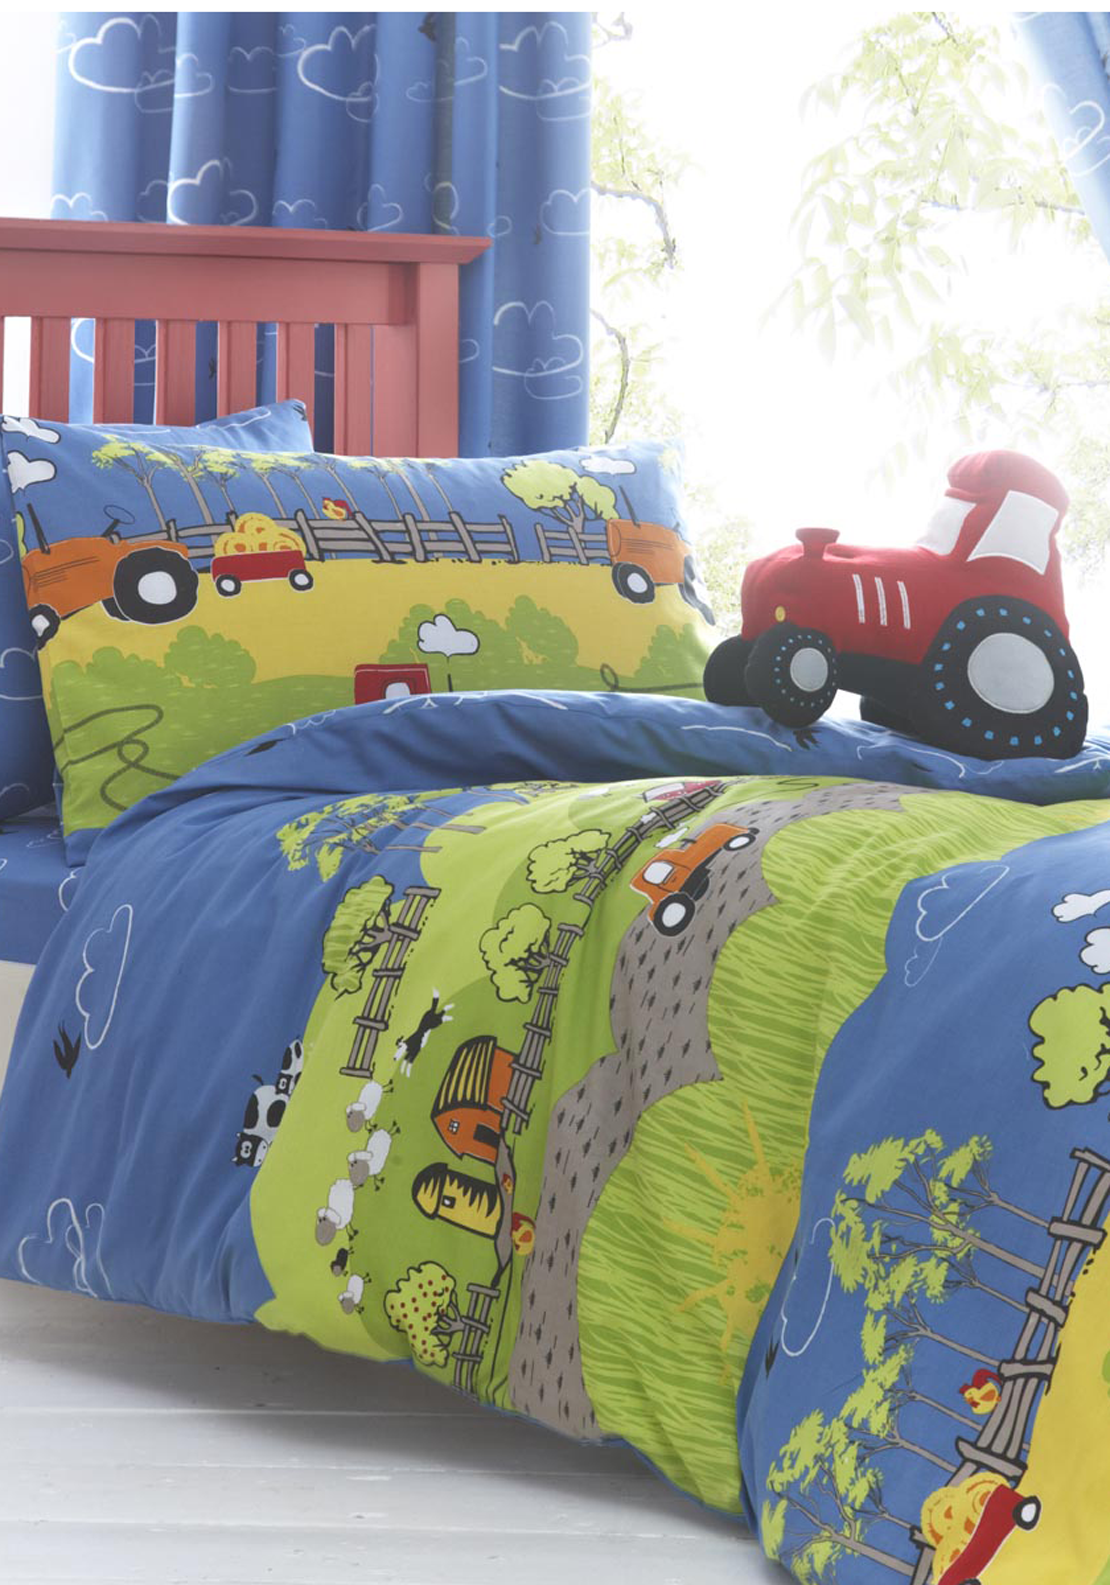 Just Kidding Farm Print Double Duvet Cover and Pillowcase Set, Blue